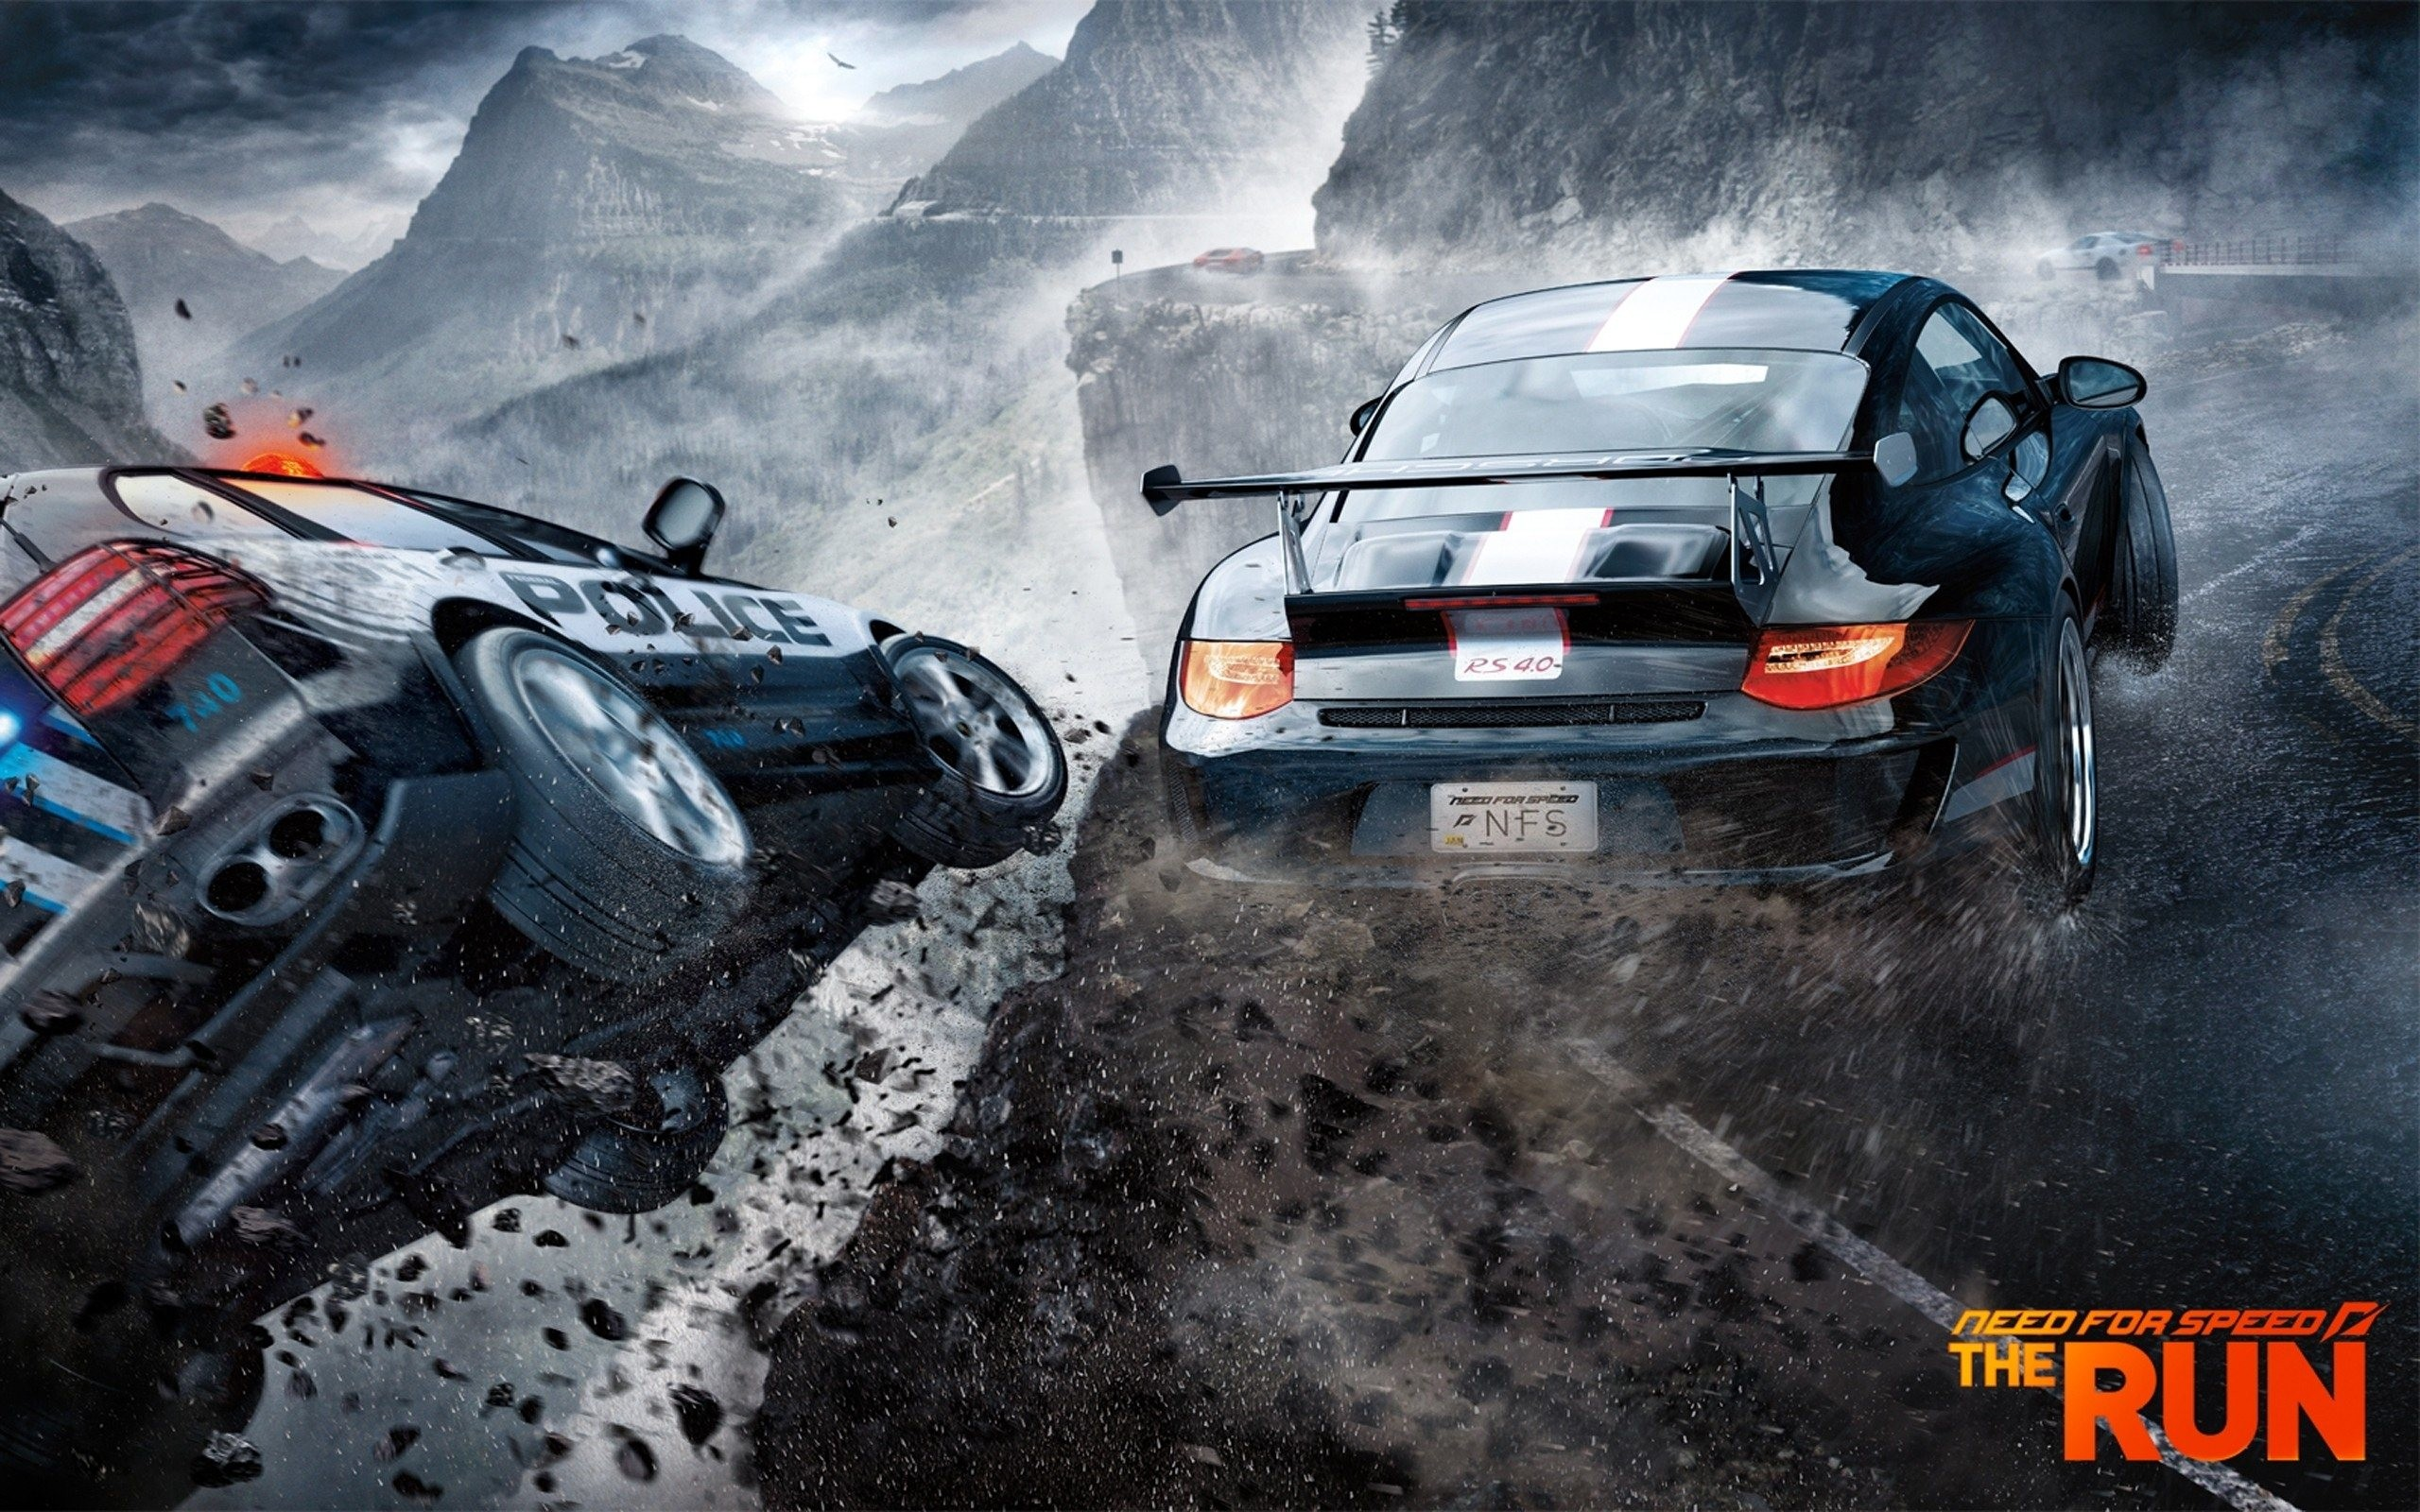 Nfs Carbon Wallpapers Hd Wallpaper Collections 4kwallpaper Wiki